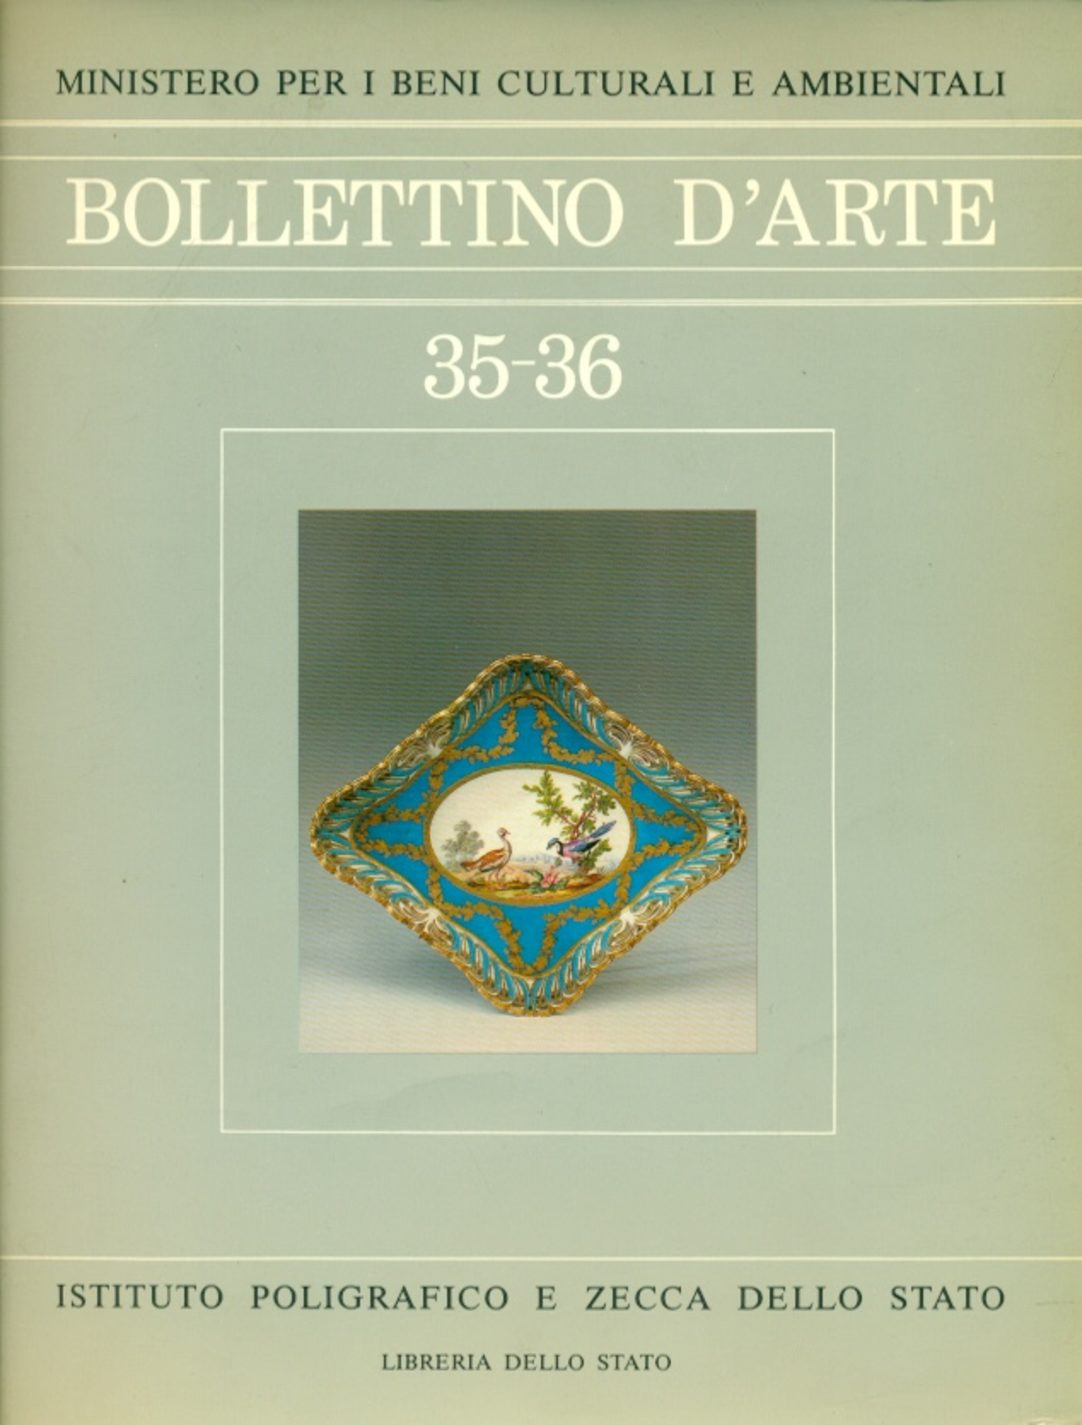 http://cbccoop.it/app/uploads/2017/06/COP-Bollettino-darte-pdf.jpg